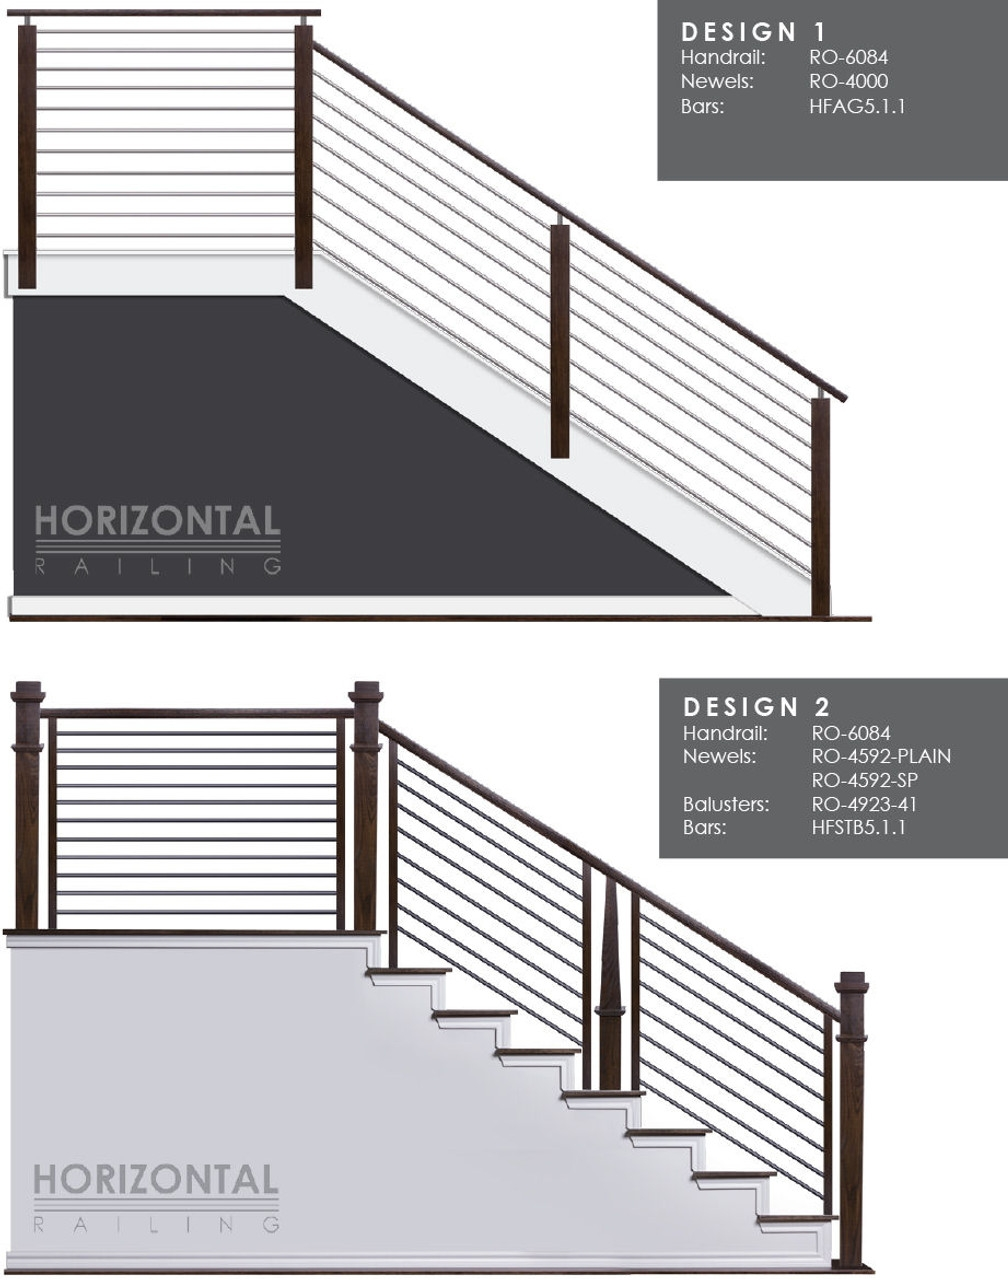 Hf5 1 1 Horizontal Railings And Bars Westfire Stair Parts | Modern Horizontal Stair Railing | Really Thin | Interior | Cast Iron | Cable | Elegant